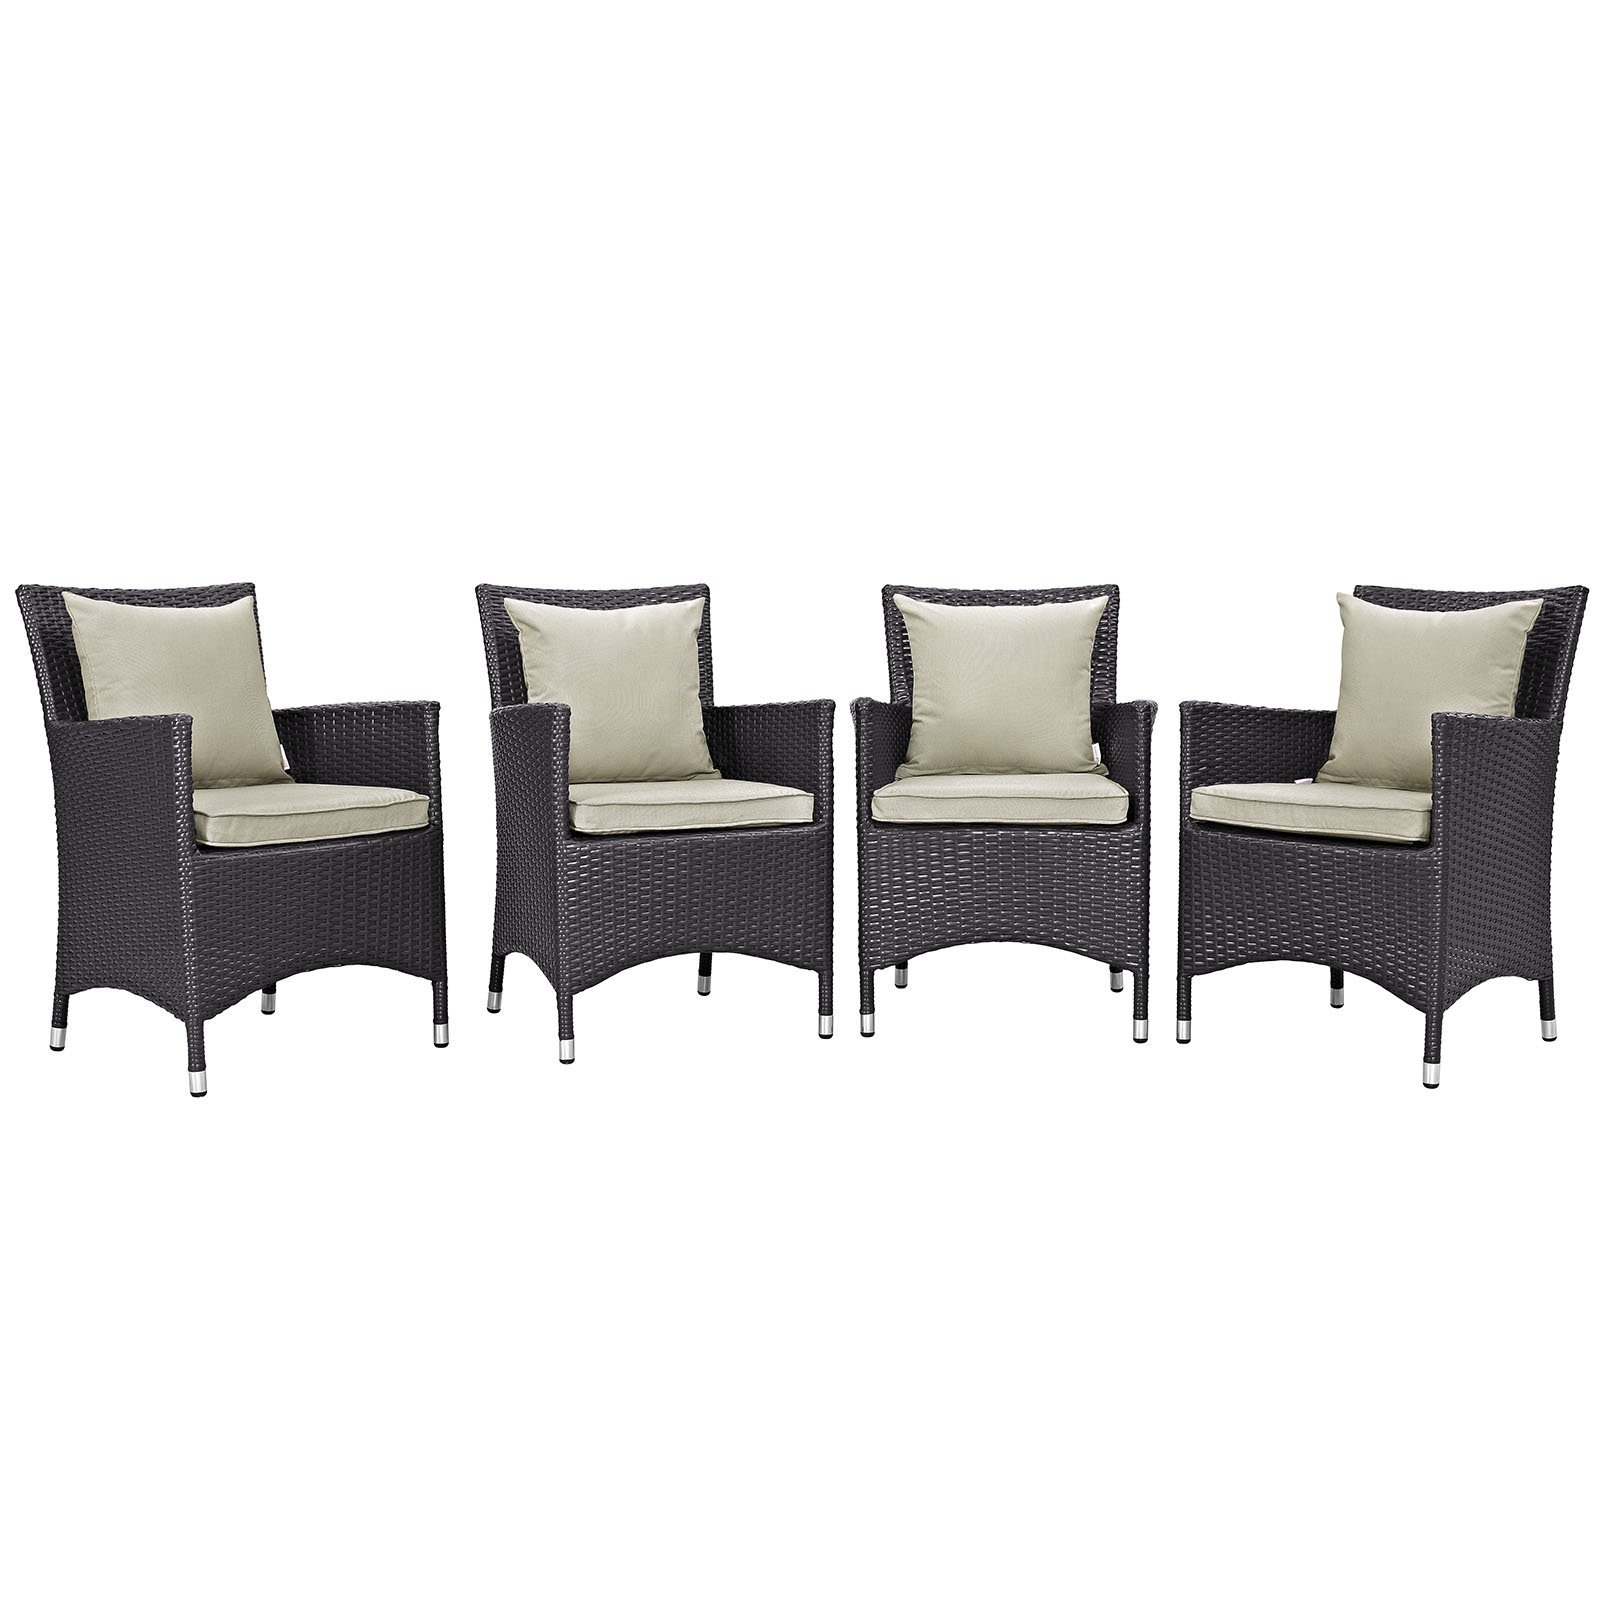 Convene 4 Piece Outdoor Patio Dining Set Espresso Beige EEI-2190-EXP-BEI-SET